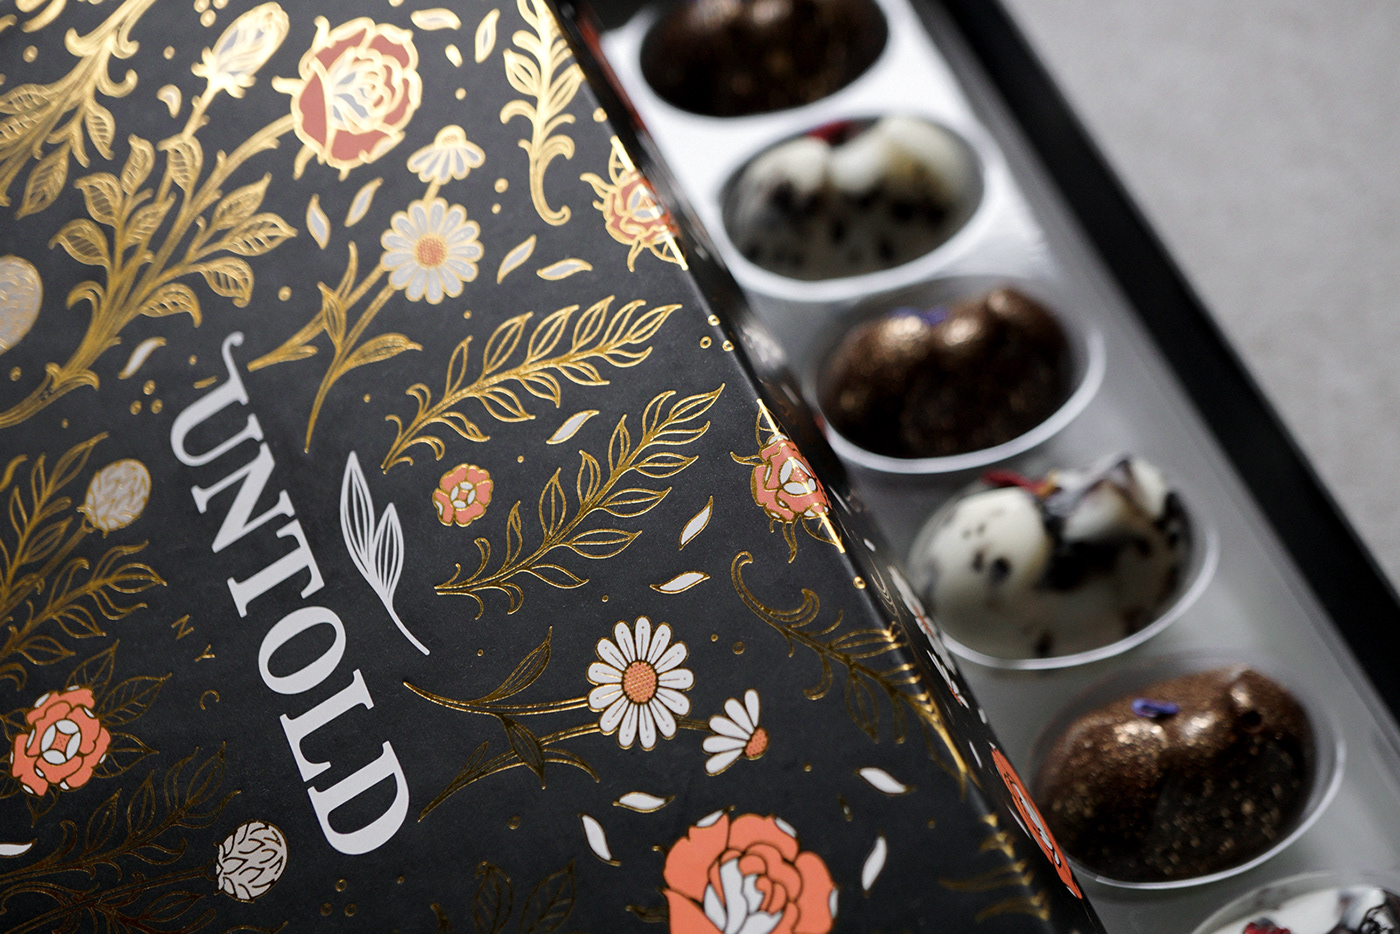 chocolate packaging,chocolates,design,desserts,gold foil,gourmet desserts,linework,packaging design